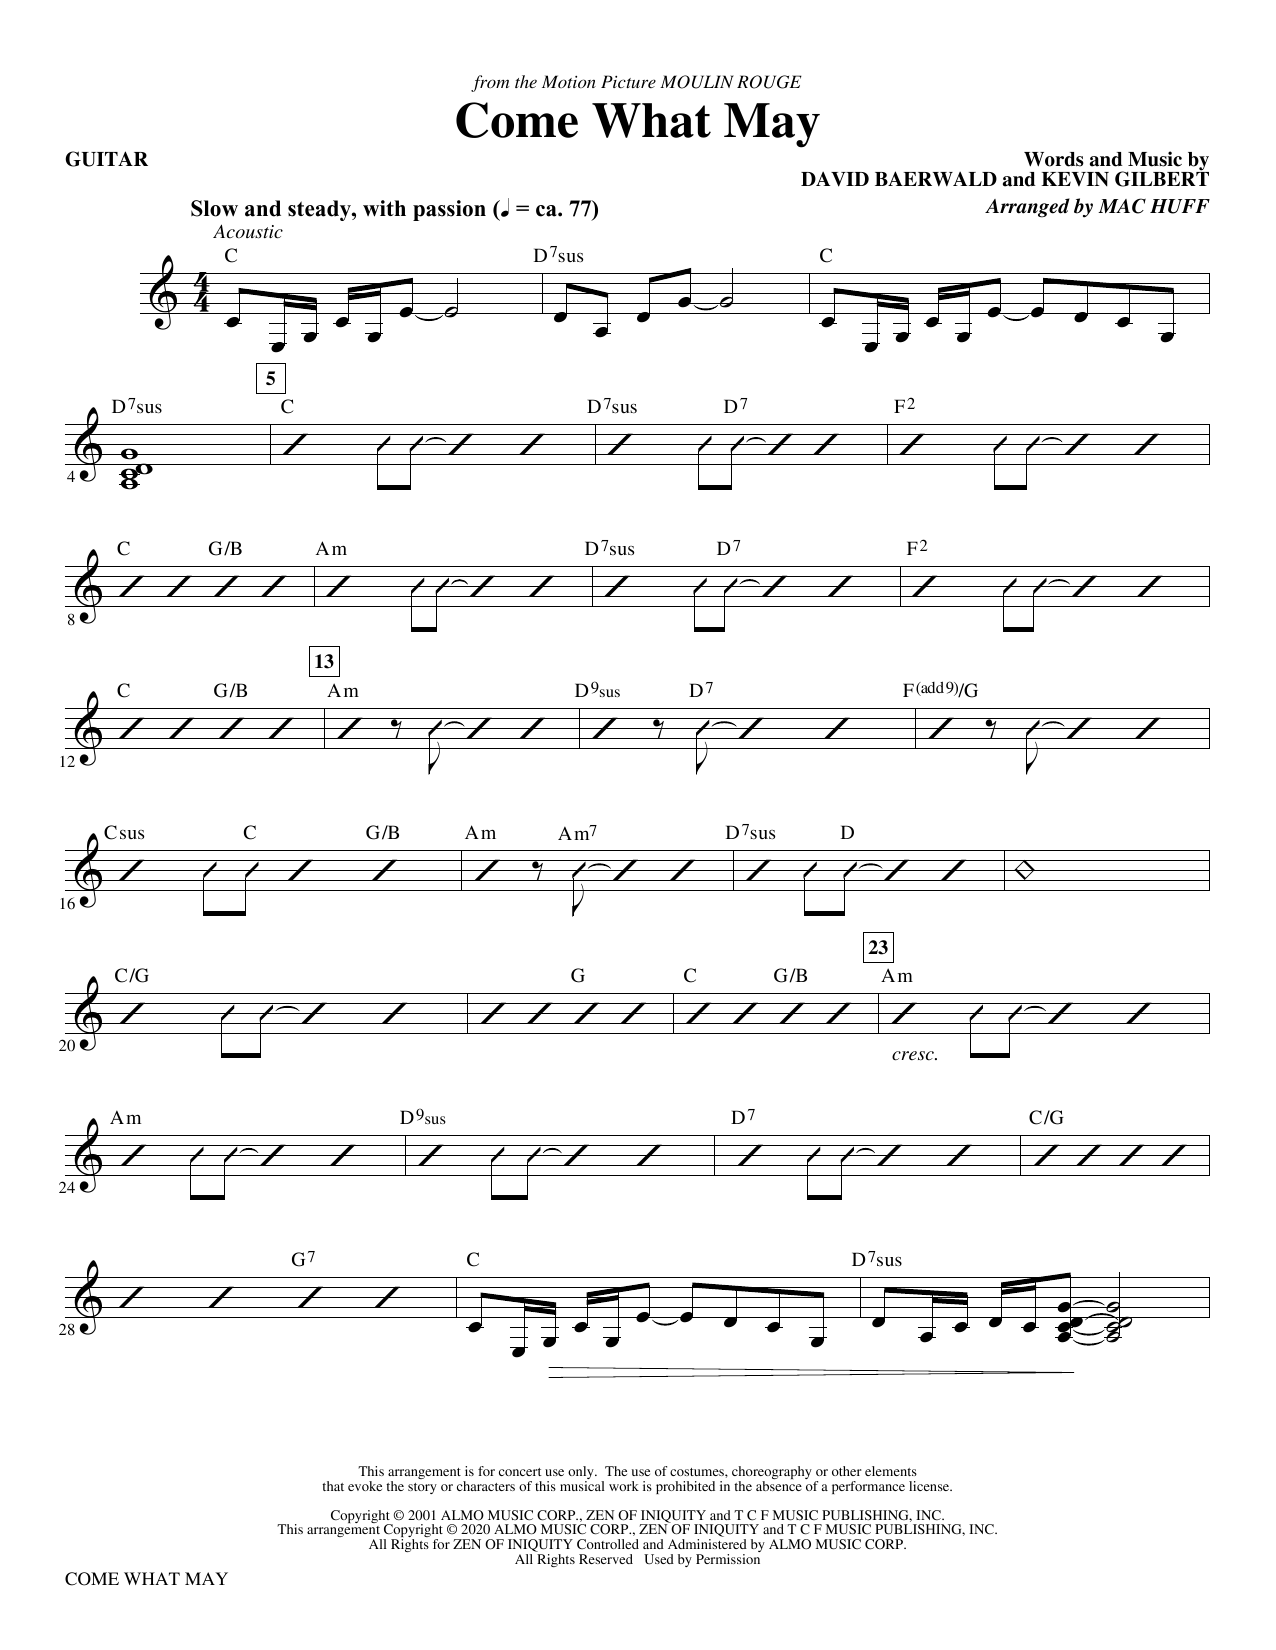 Come What May (from Moulin Rouge) (arr. Mac Huff) - Guitar Partition Digitale